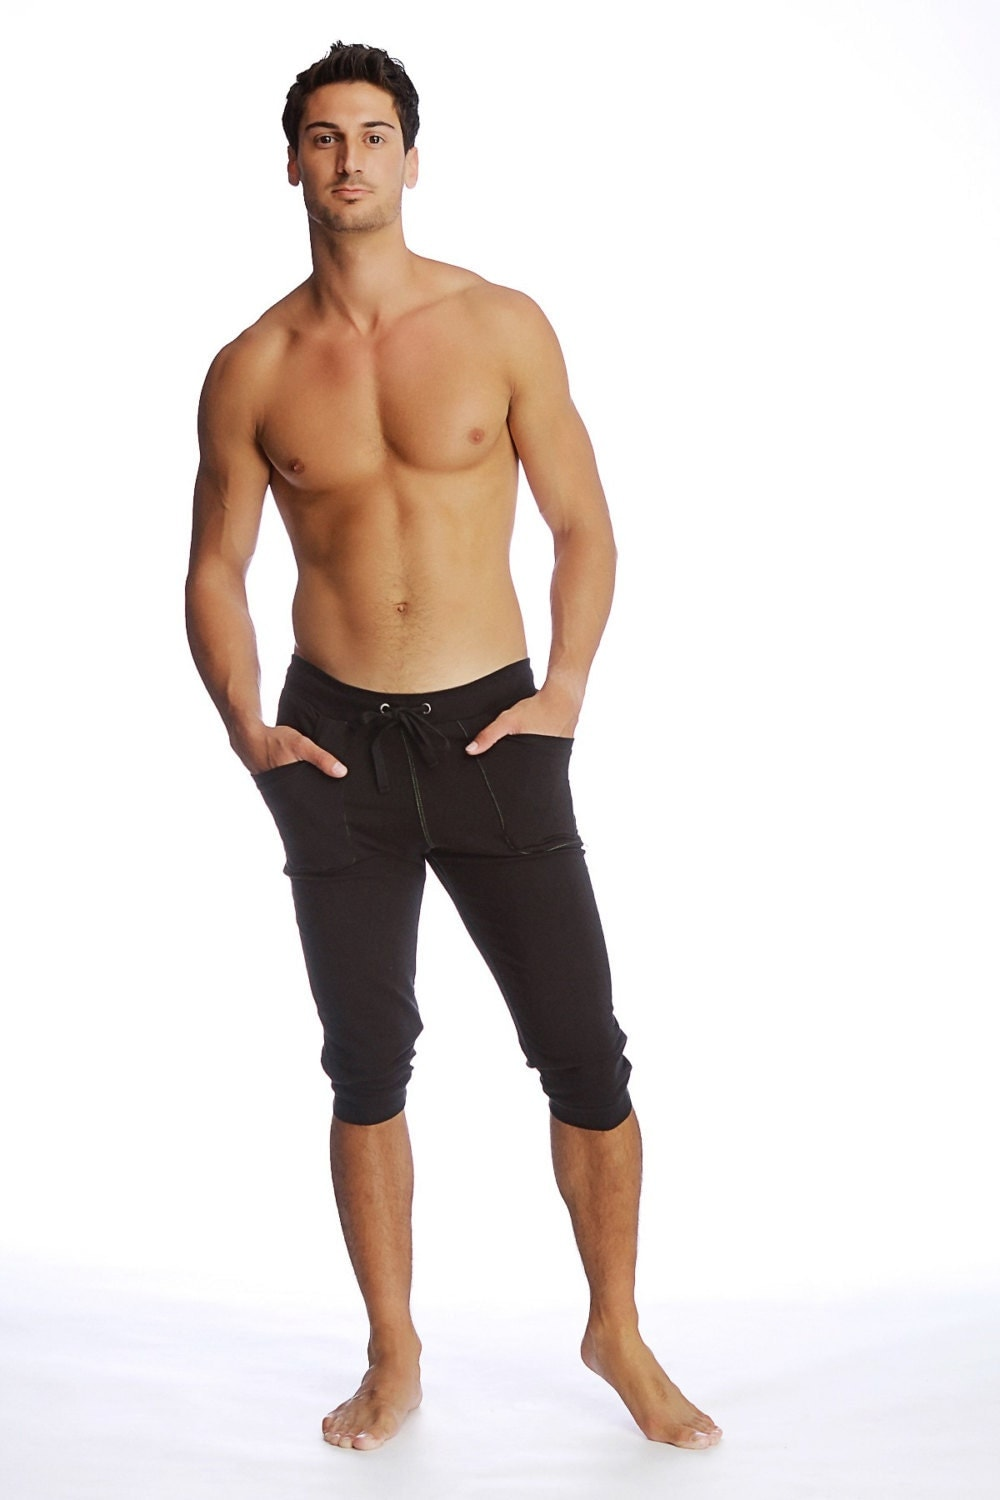 The Foundry Big & Tall Supply Co. Fleece Workout Pants - Big and Tall.